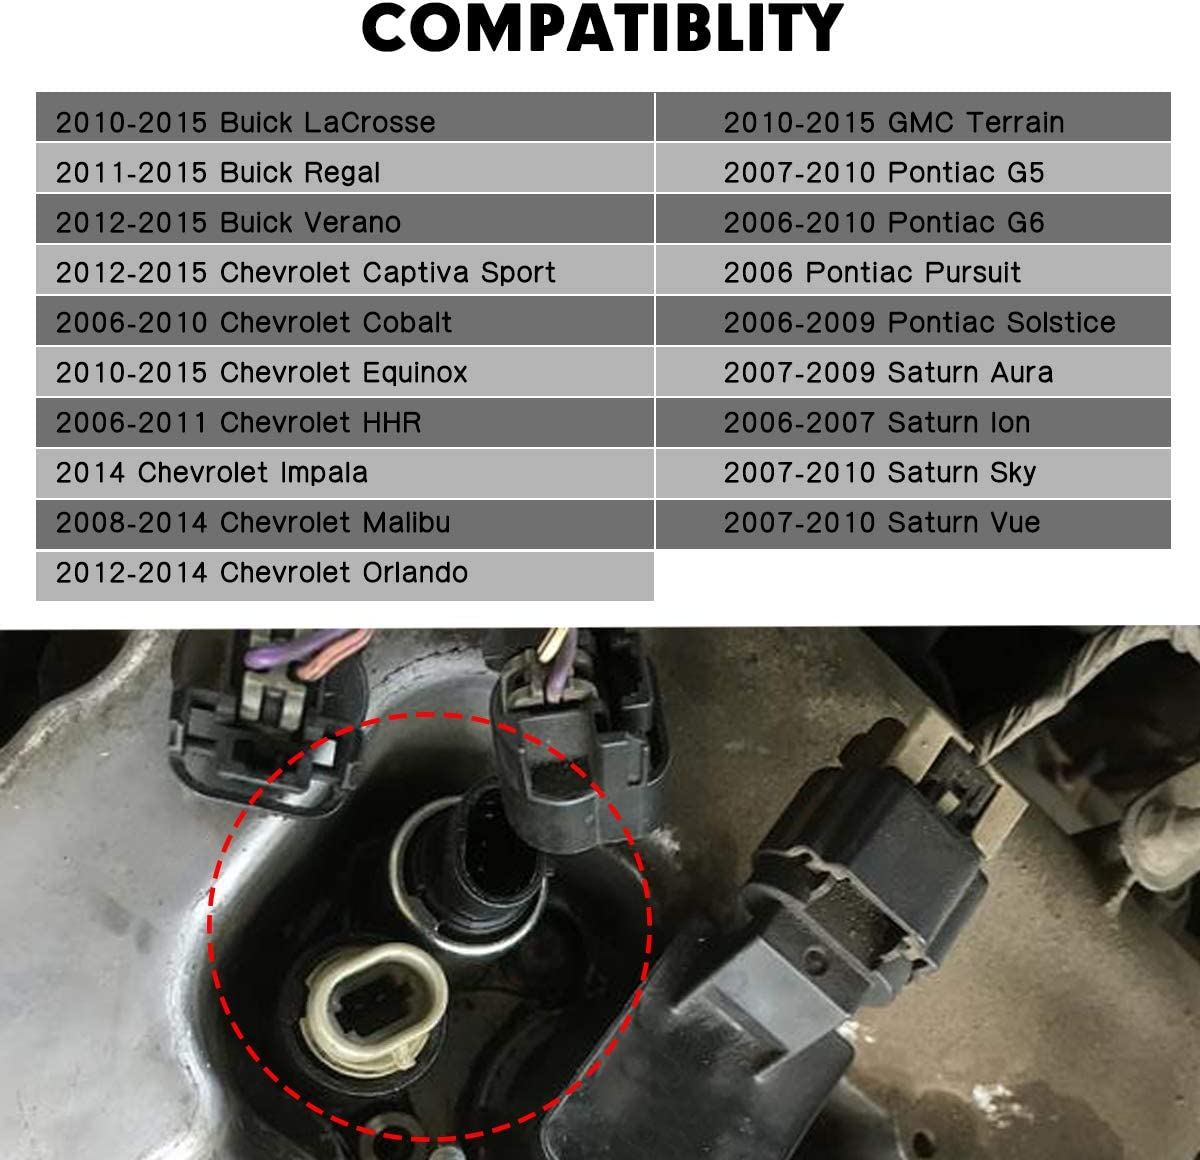 2.2 2.4L HHR Replaces Part # 12655421 Malibu Equinox Pontiac G6 and more GM Vehicles 2.0 GMC Terrain 12655420 Intake and Exhaust Camshaft Position Actuator Solenoid Valve Fits Chevy Cobalt